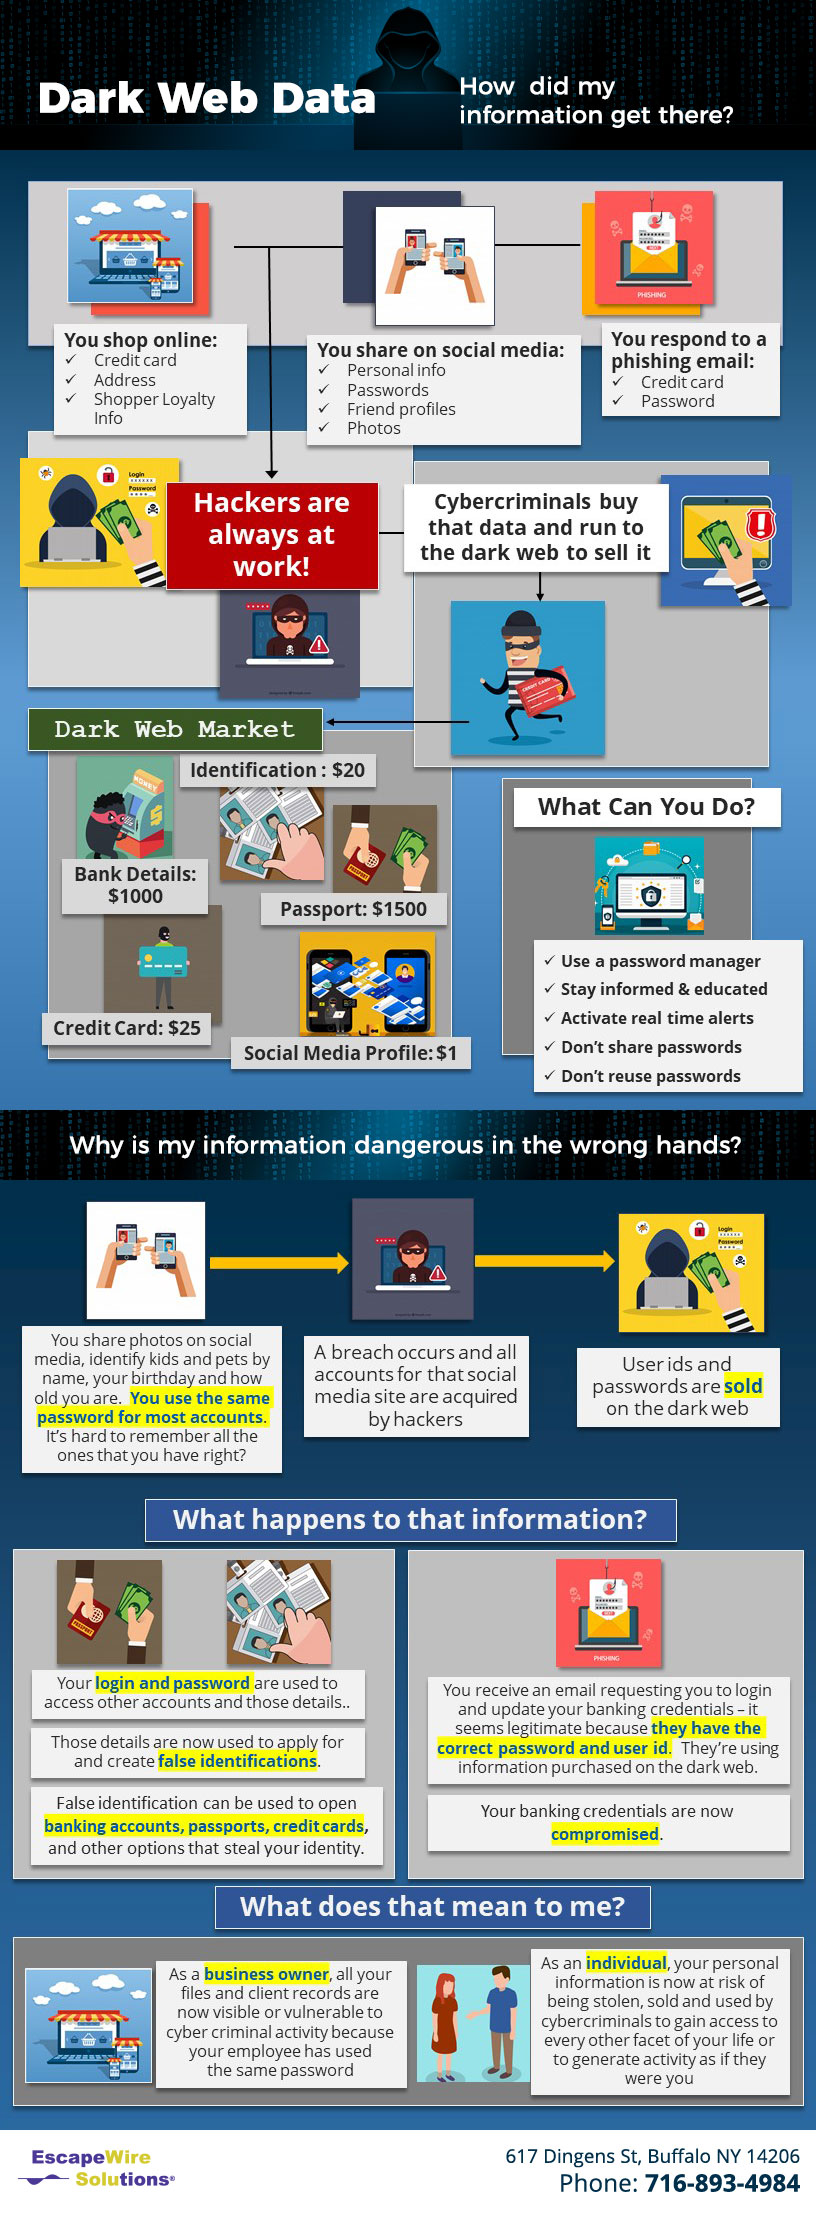 dark web dangers infographic